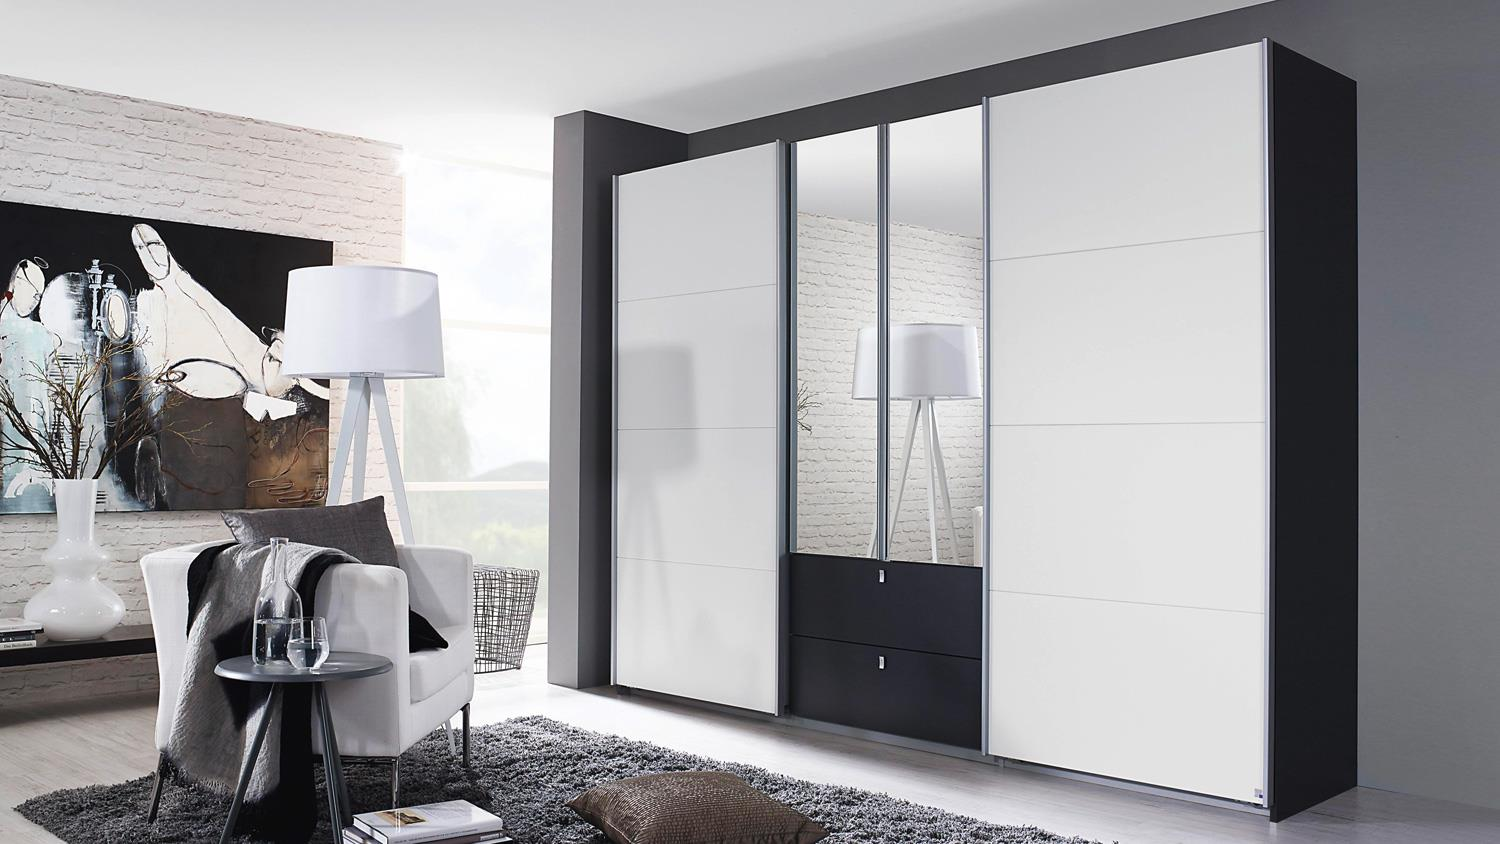 schwebet renschrank kombino kleiderschrank in grau wei spiegel 226. Black Bedroom Furniture Sets. Home Design Ideas